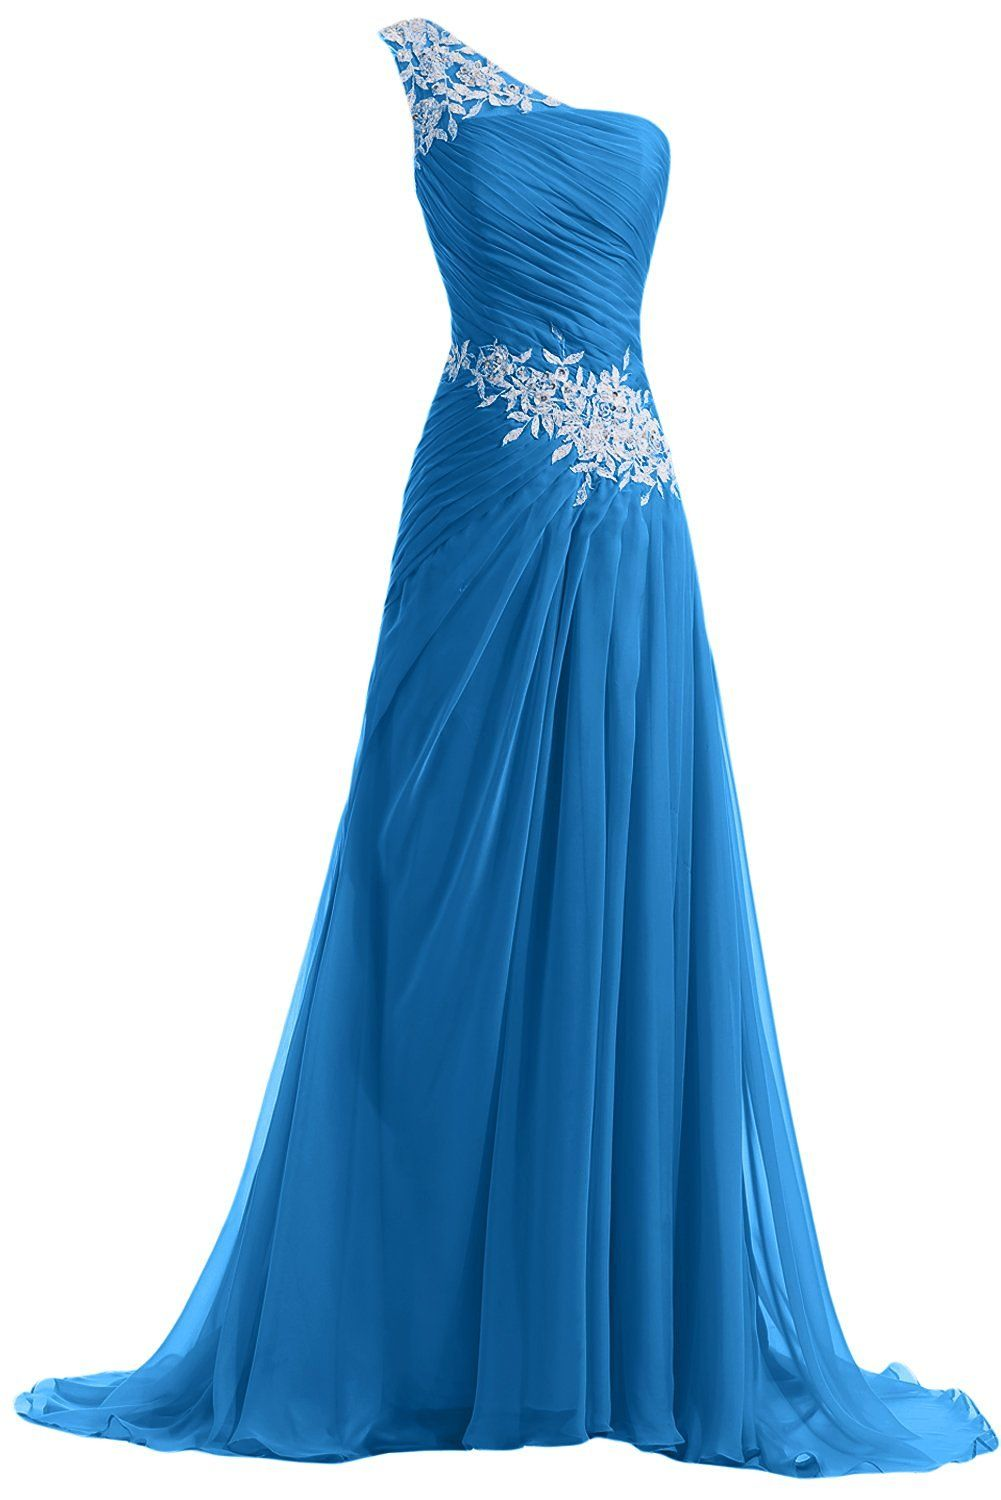 Sunvary new chiffon and applique long bridesmaid dresses evening